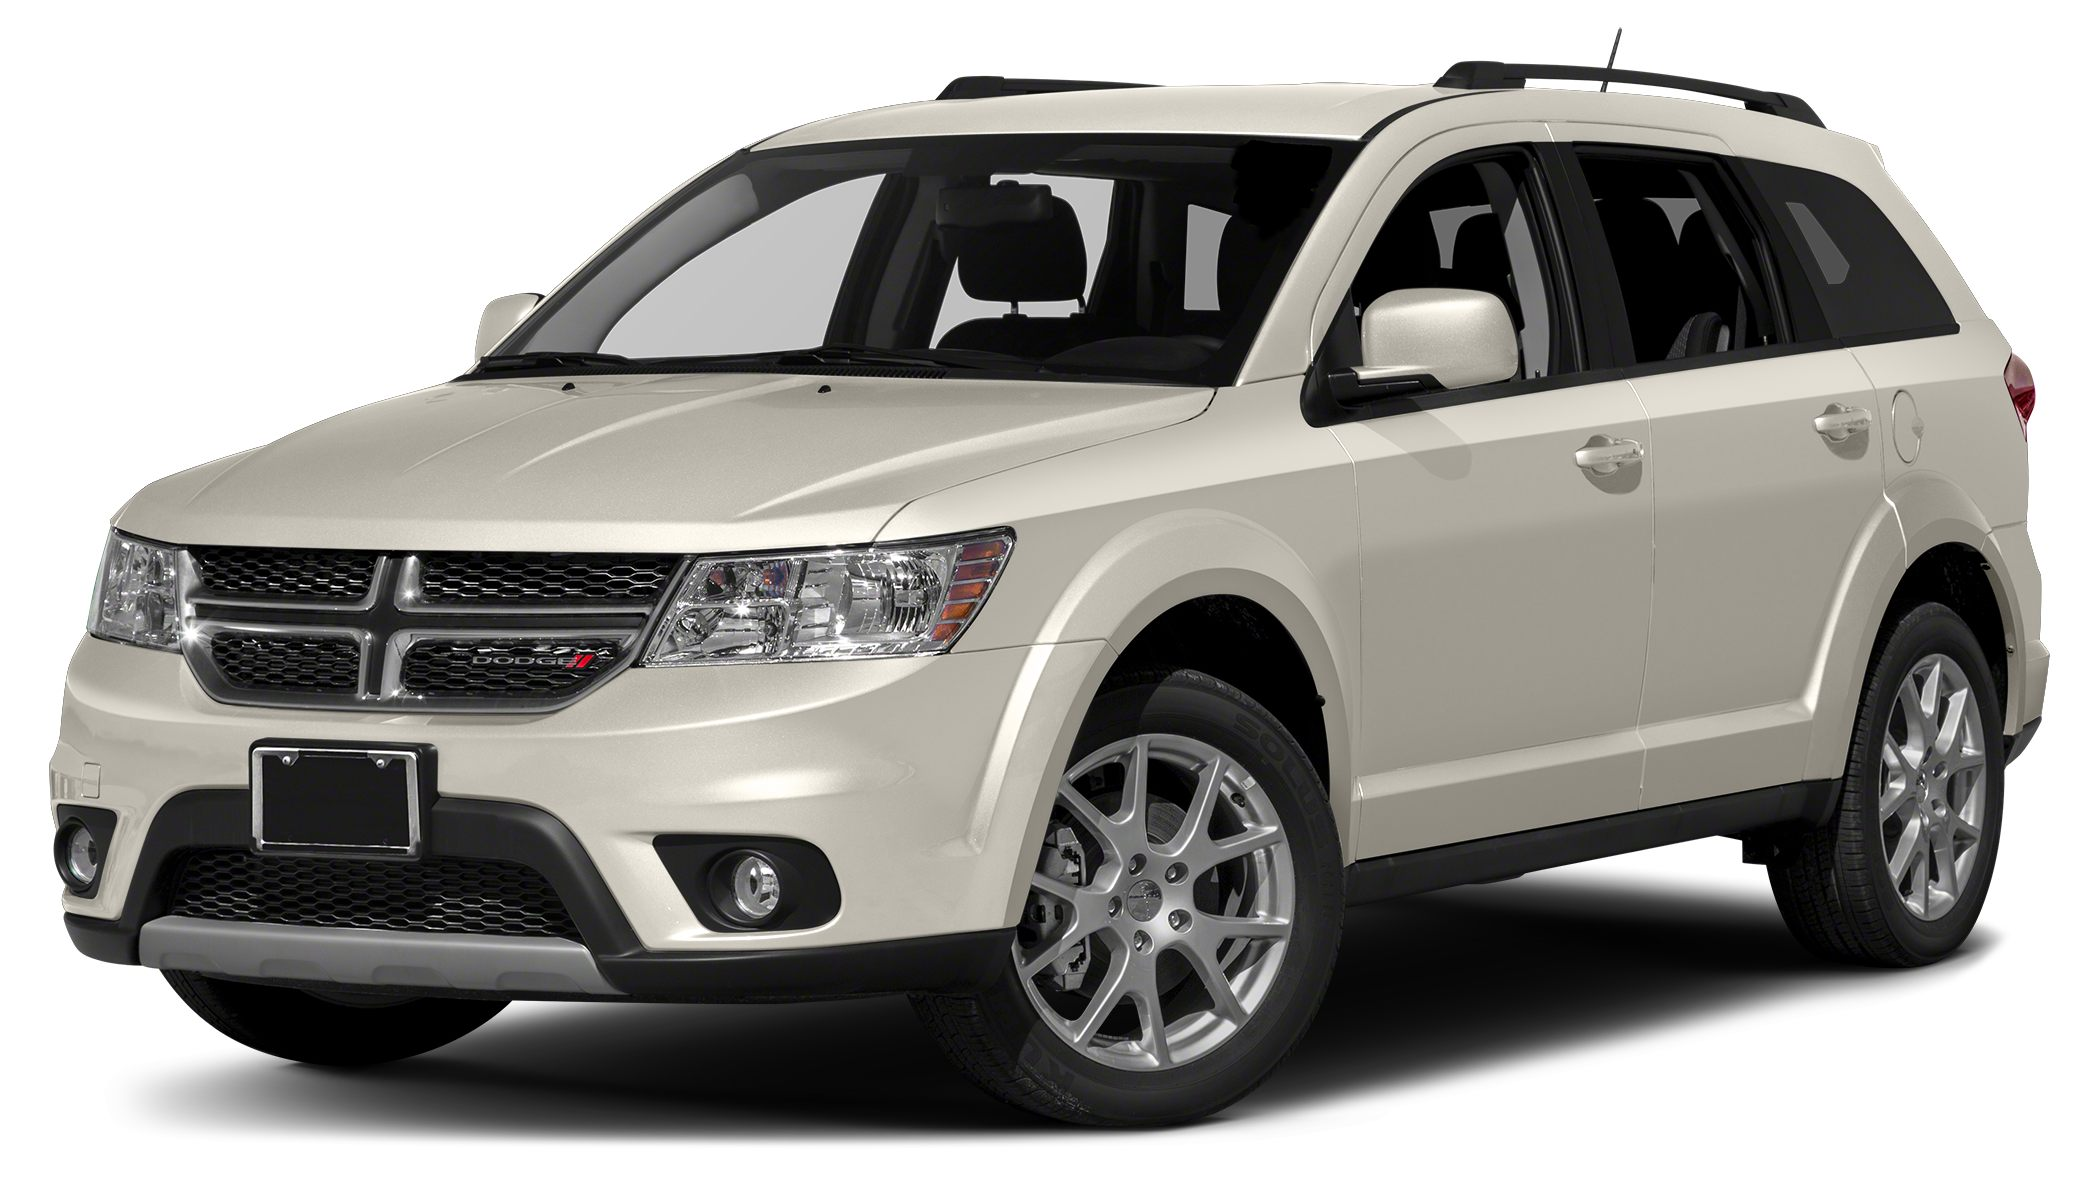 2015 Dodge Journey SXT 2015 Dodge Journey SXT in White and One Year Free Maintanence Gasoline Do